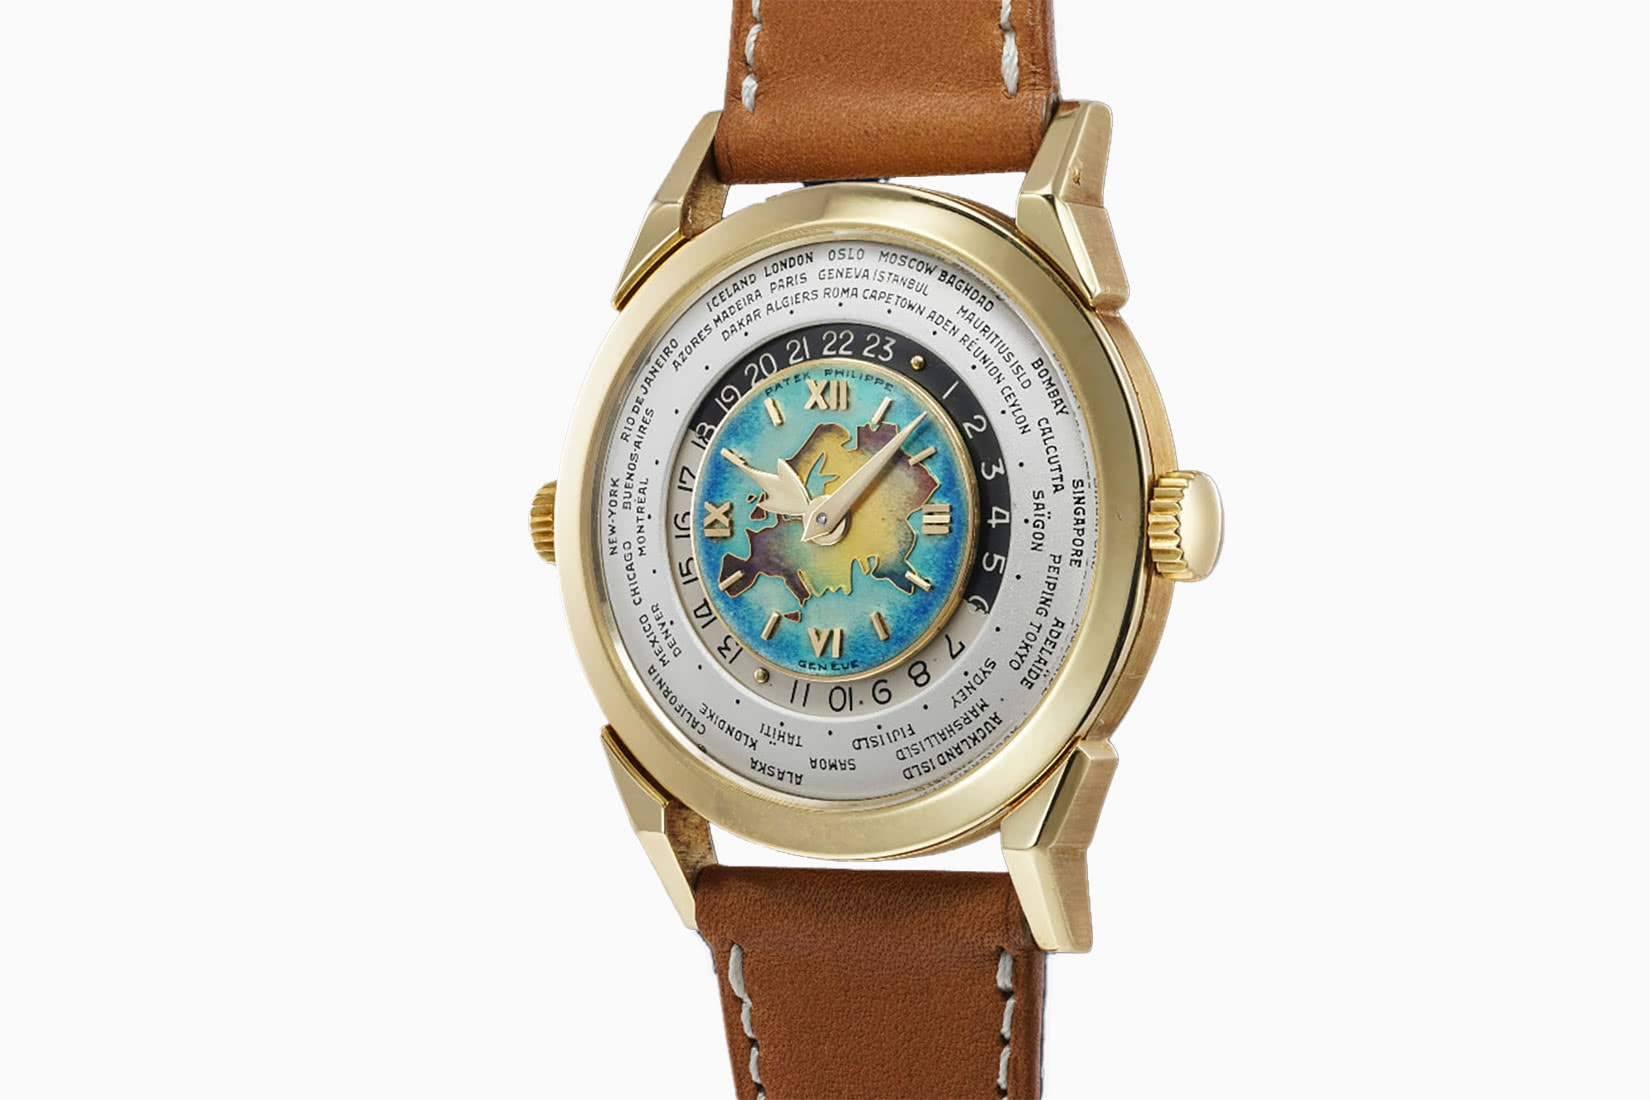 most expensive watches patek philippe two crown worldtime ref 2523 - Luxe Digital